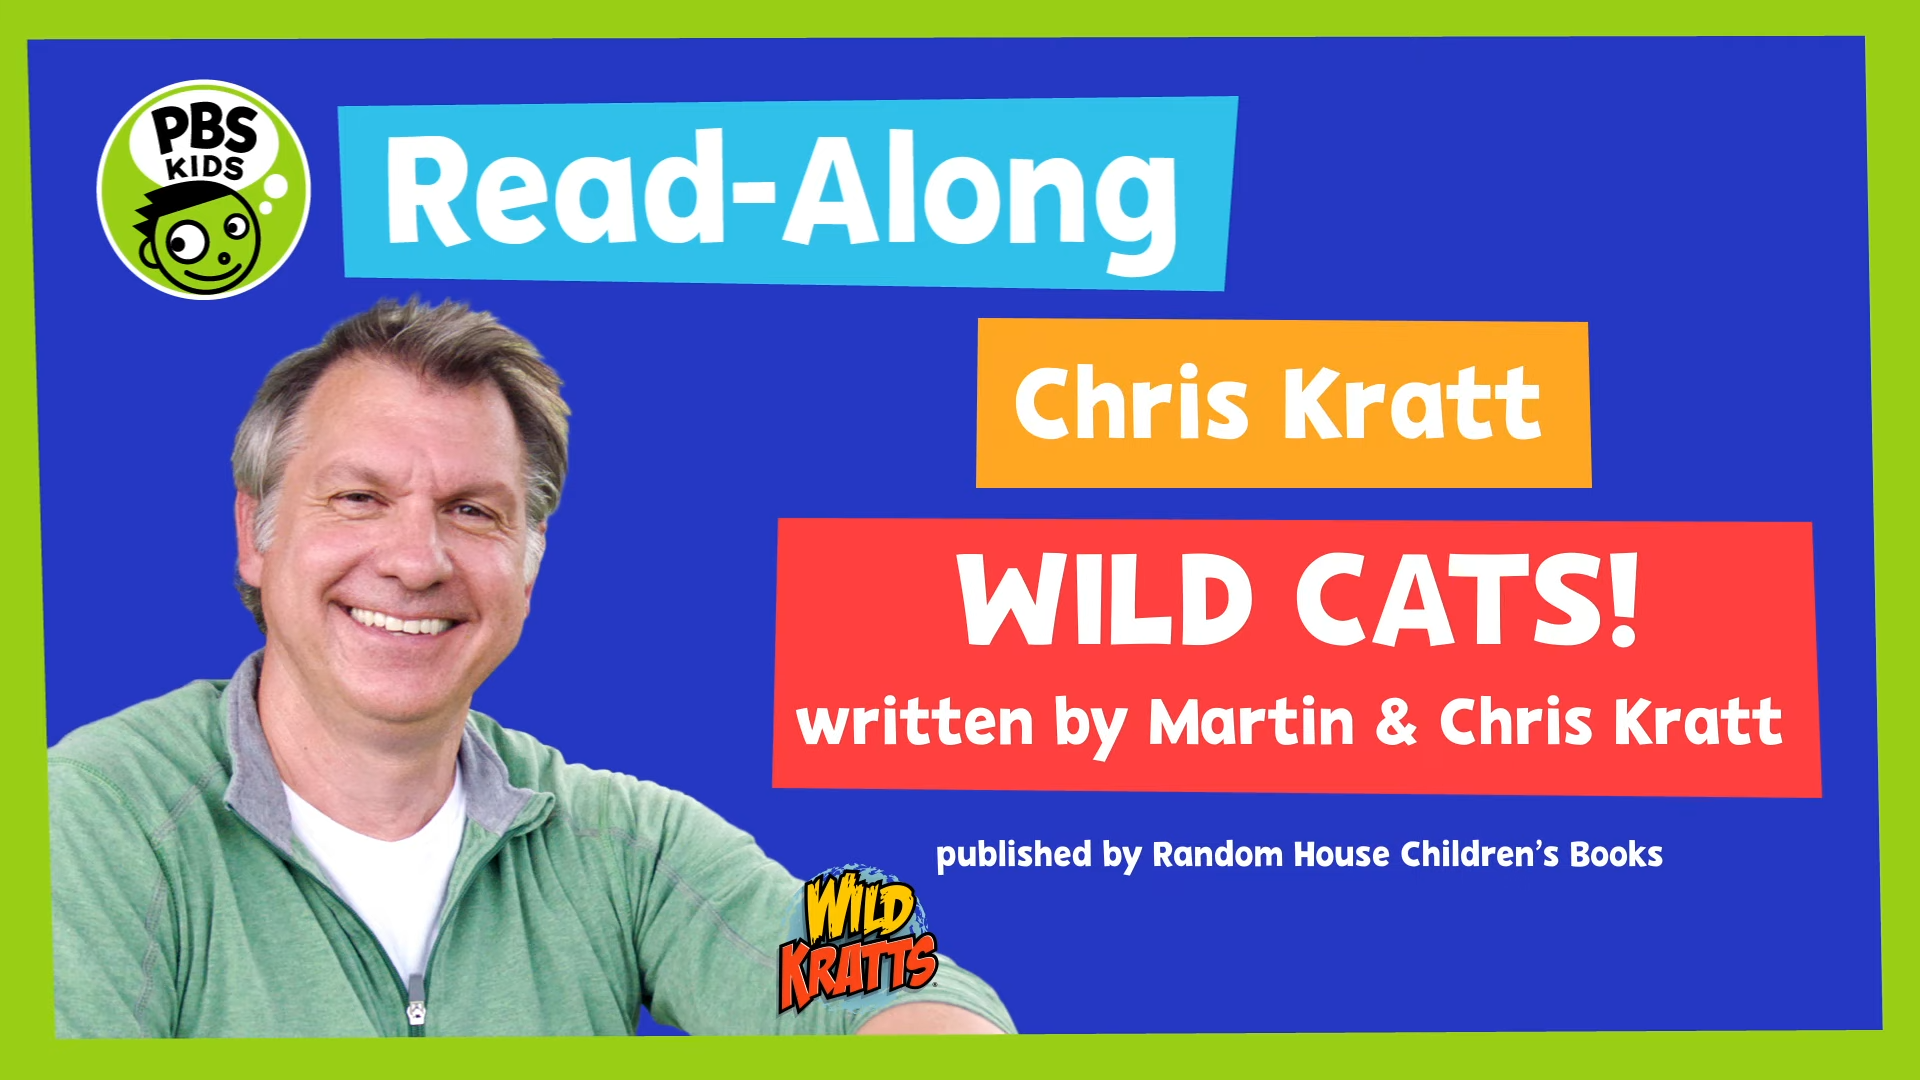 Wild Kratts Cats and Dogs Read Along with Chris Kratt